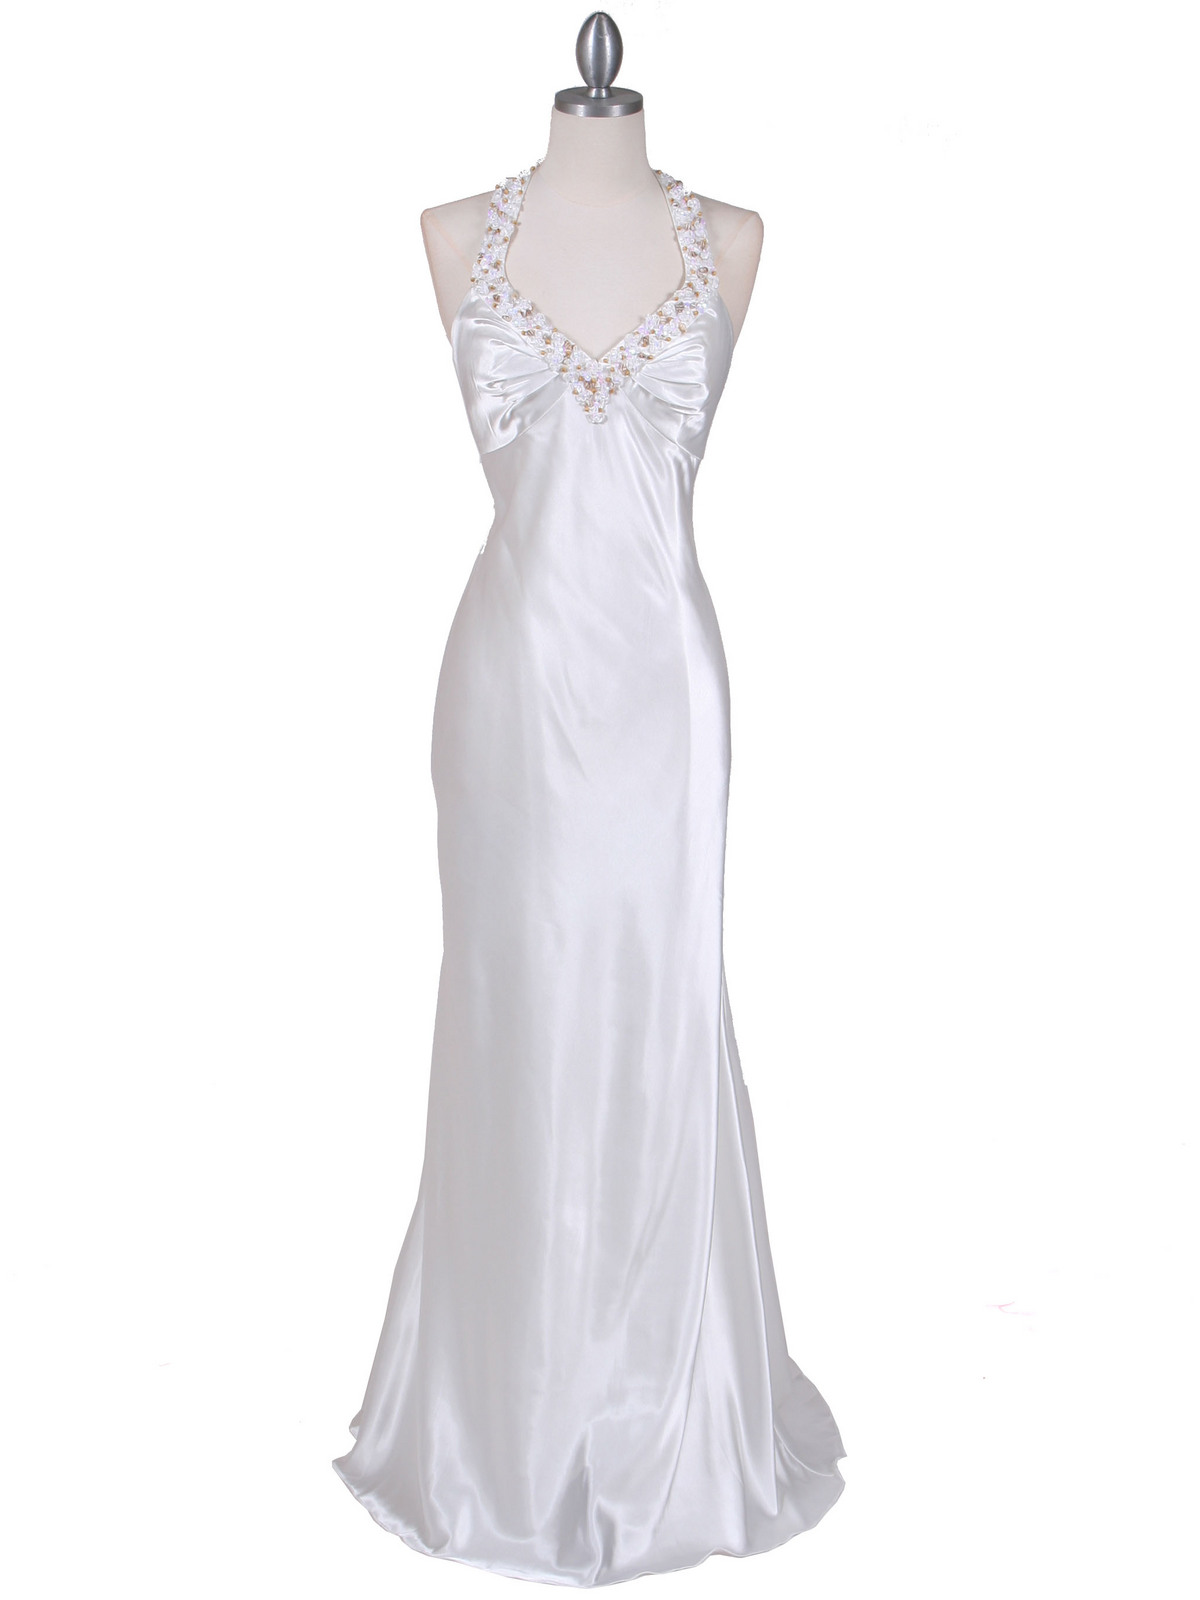 5005 Ivory Satin Evening Dresses - Front Image